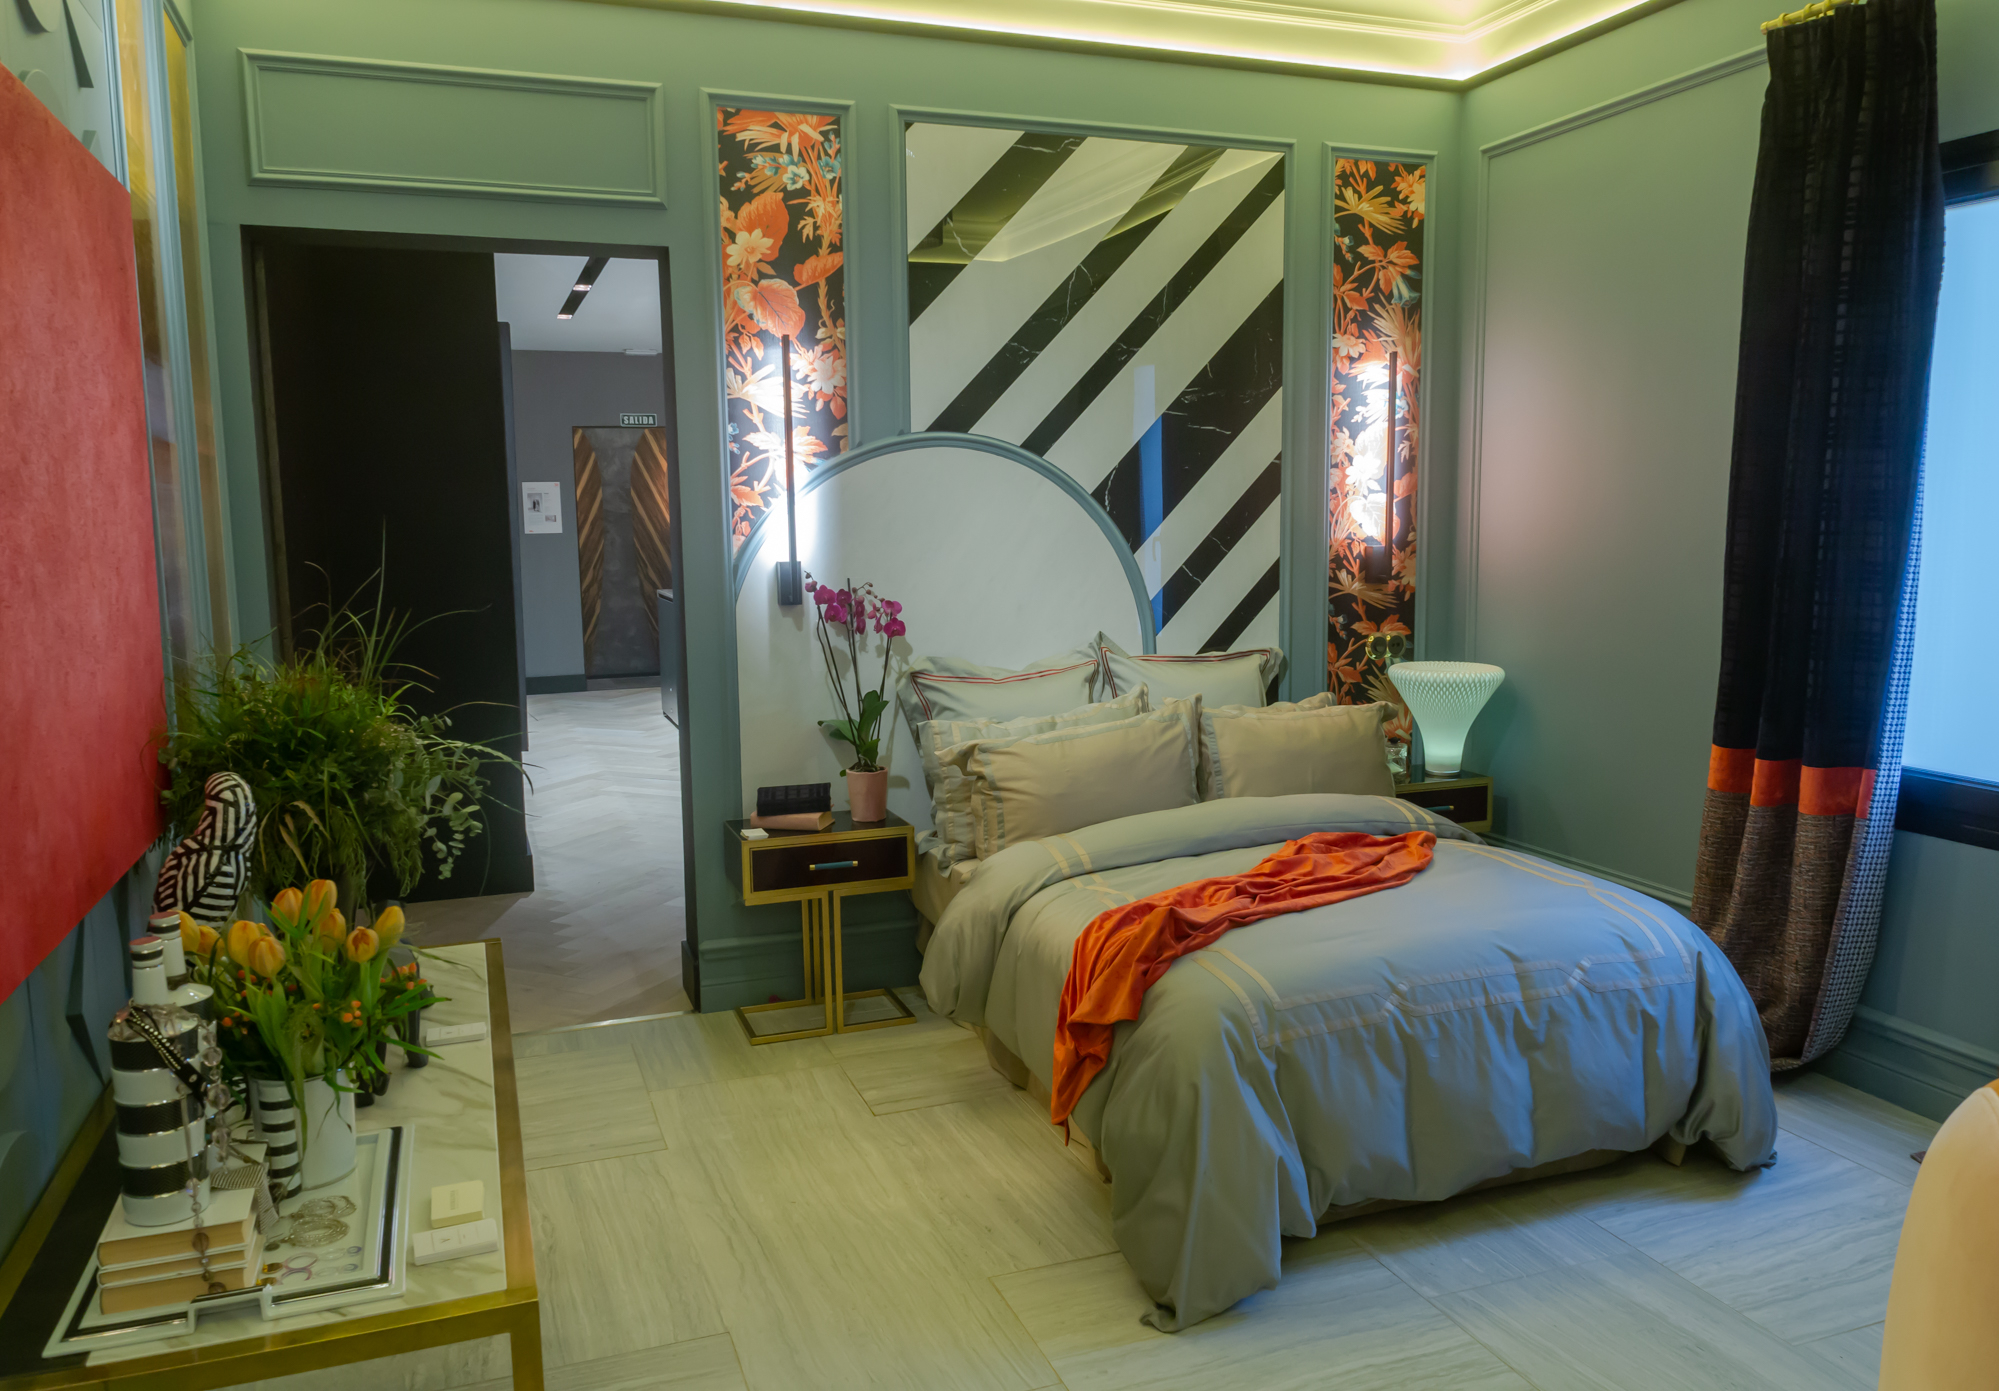 The Flapper bedroom by Virginia Sanchez at Casa Decor 2019, Madrid